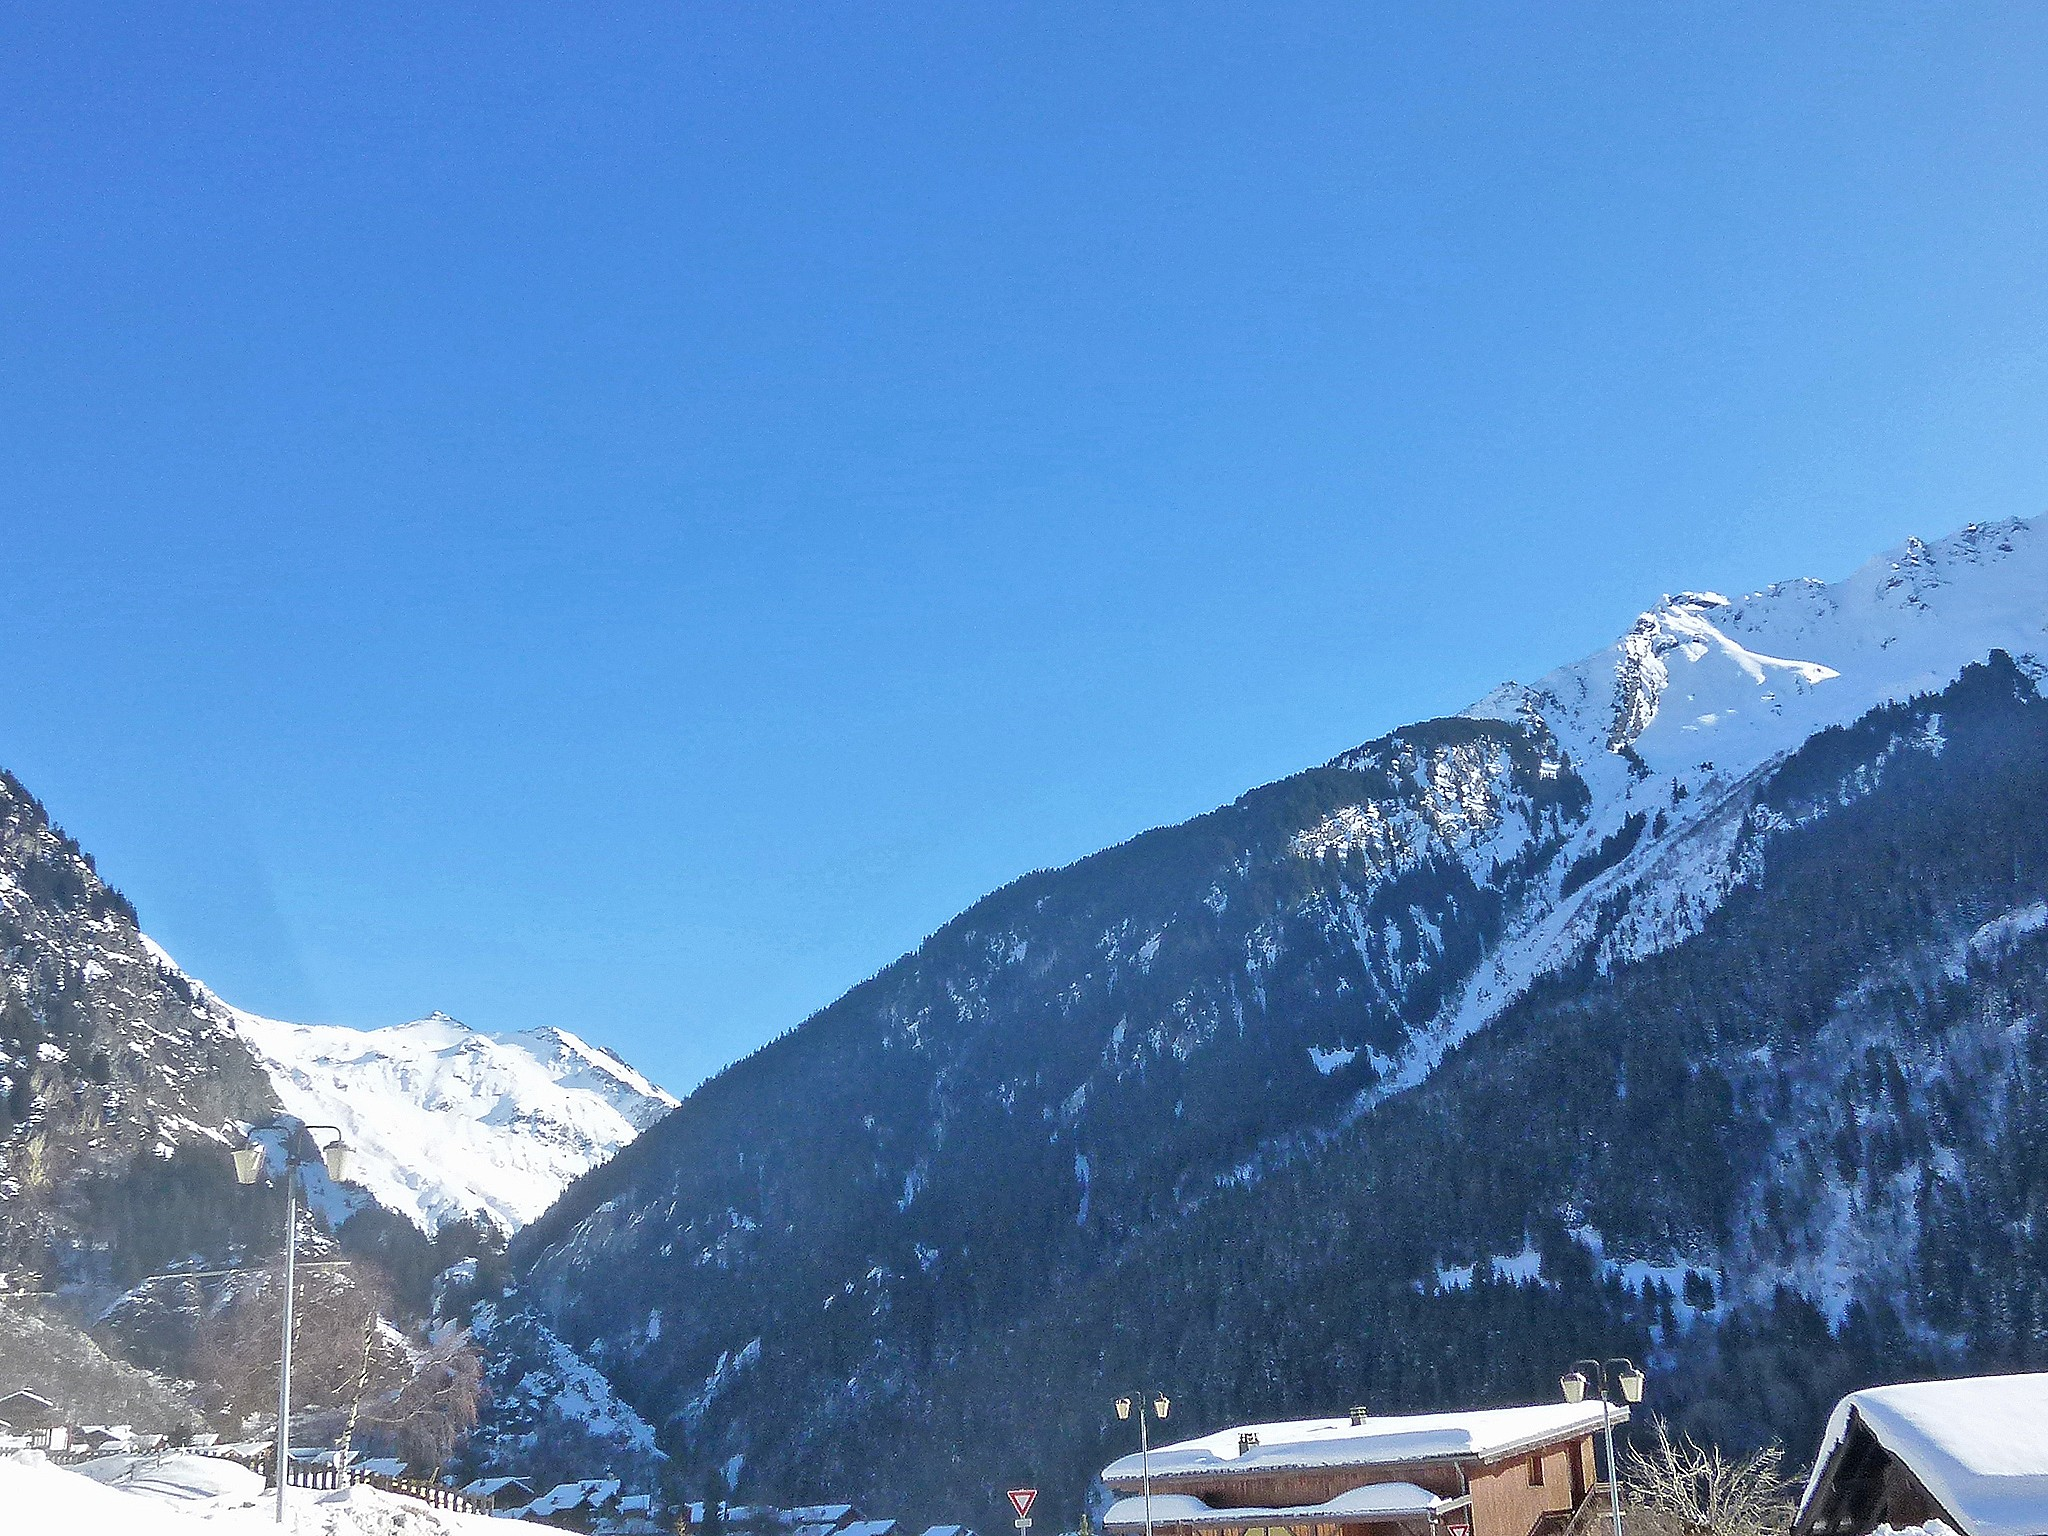 Chalet Carella - ski area